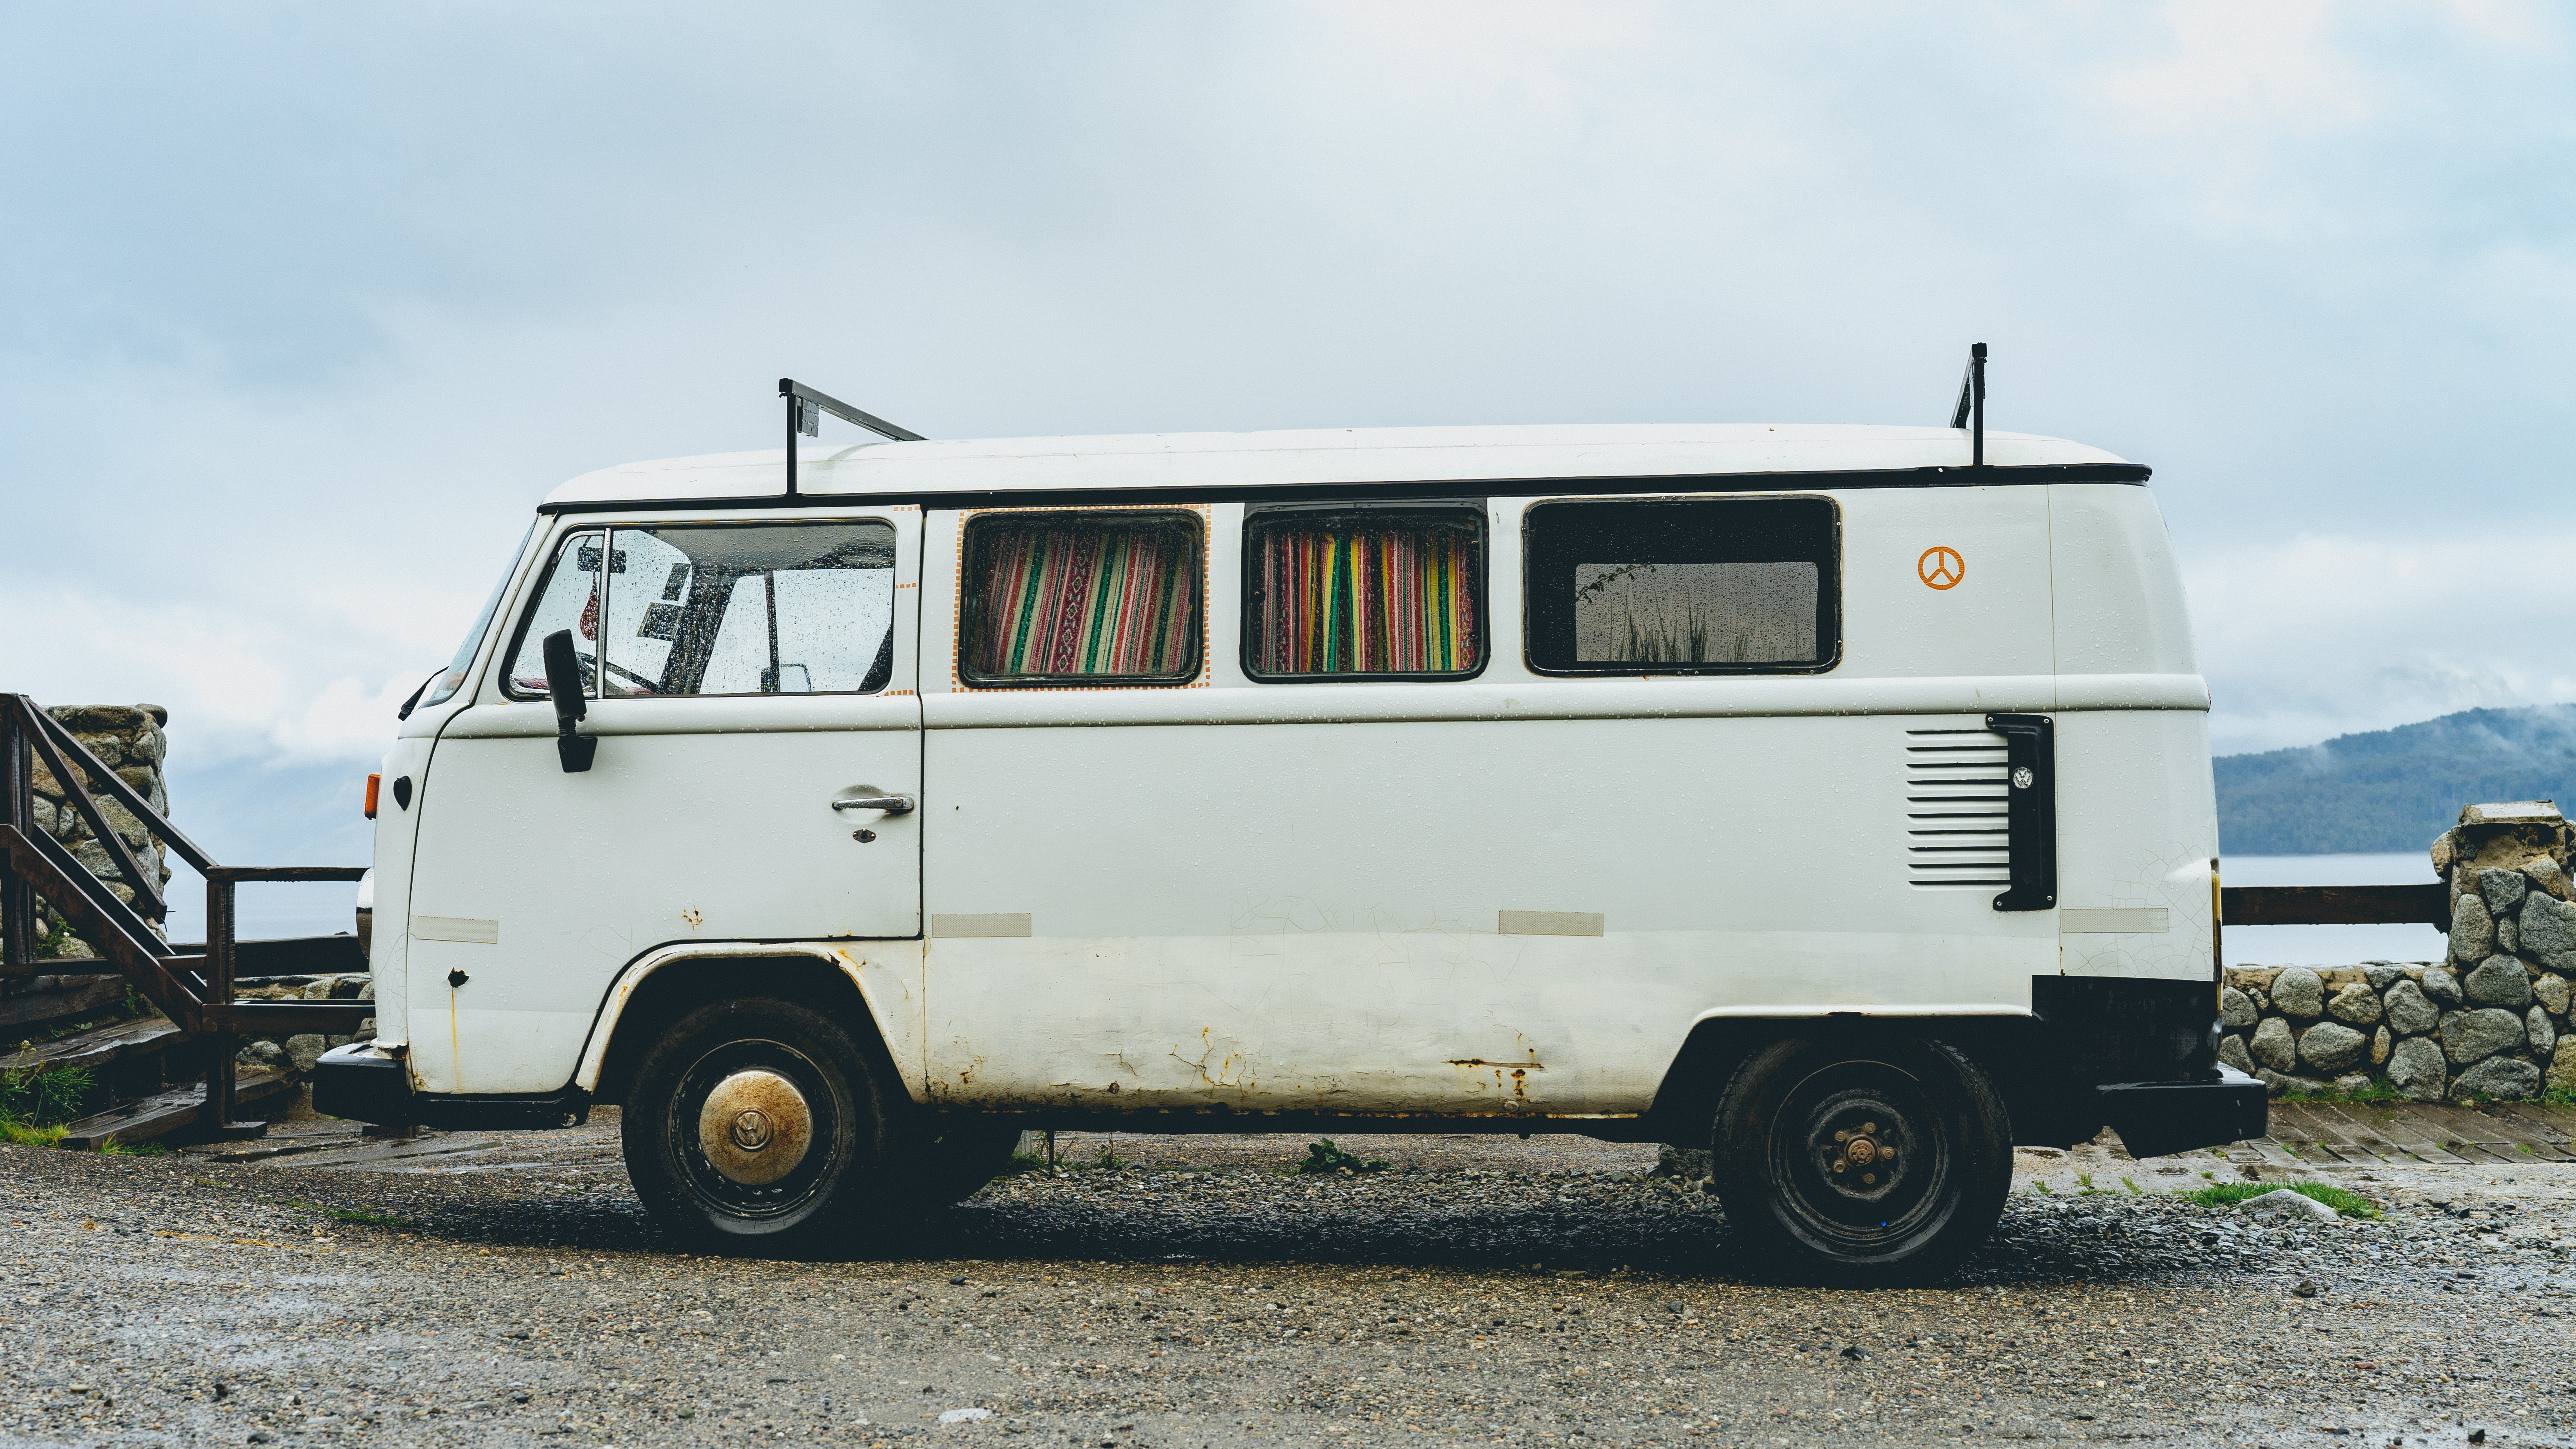 A white Volkswagen bus parked on a gravel surface by a lake